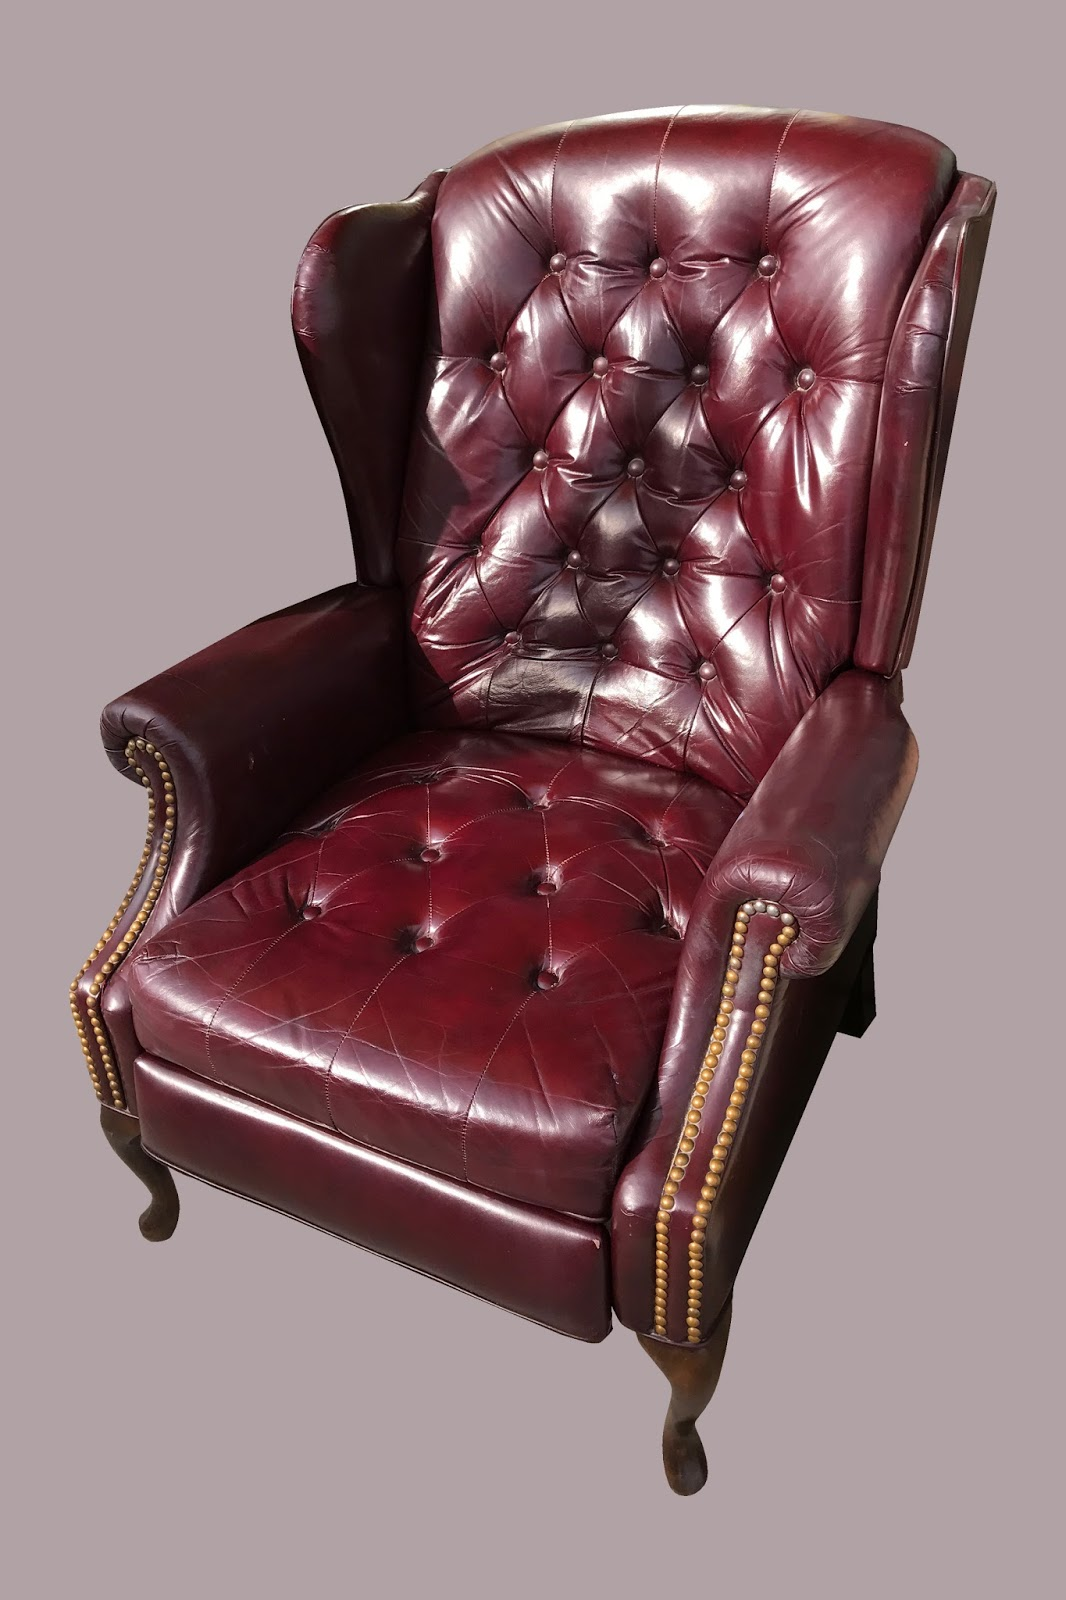 leather wingback chairs south africa round tables and uhuru furniture collectibles recliner